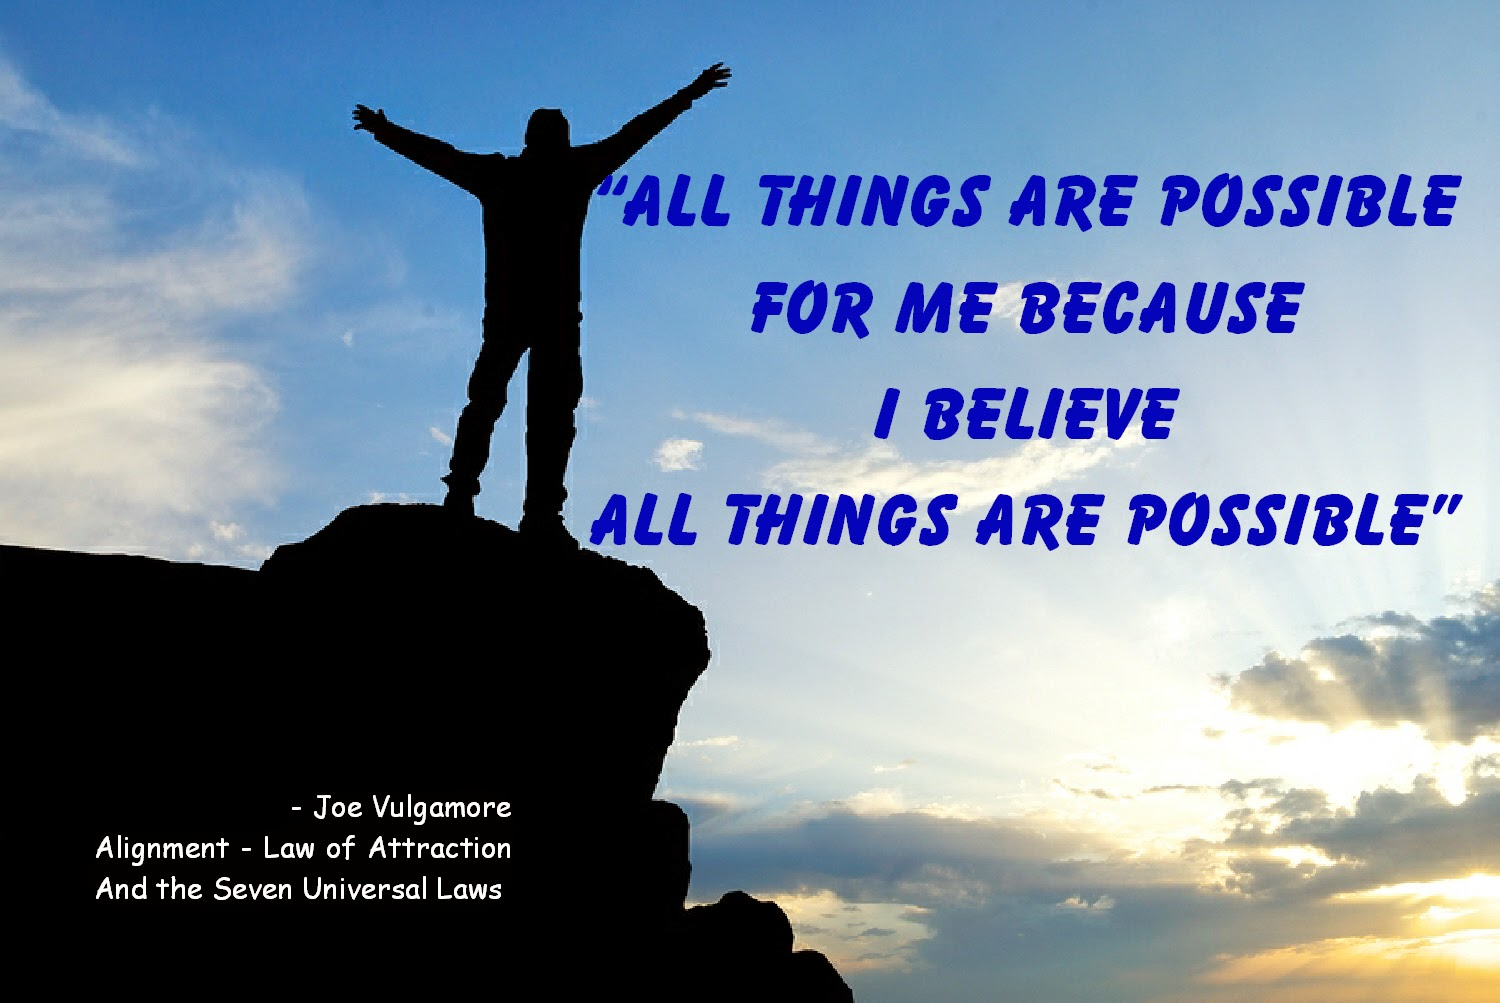 Life Coach Joe Vulgamore Speaks on Affirmations